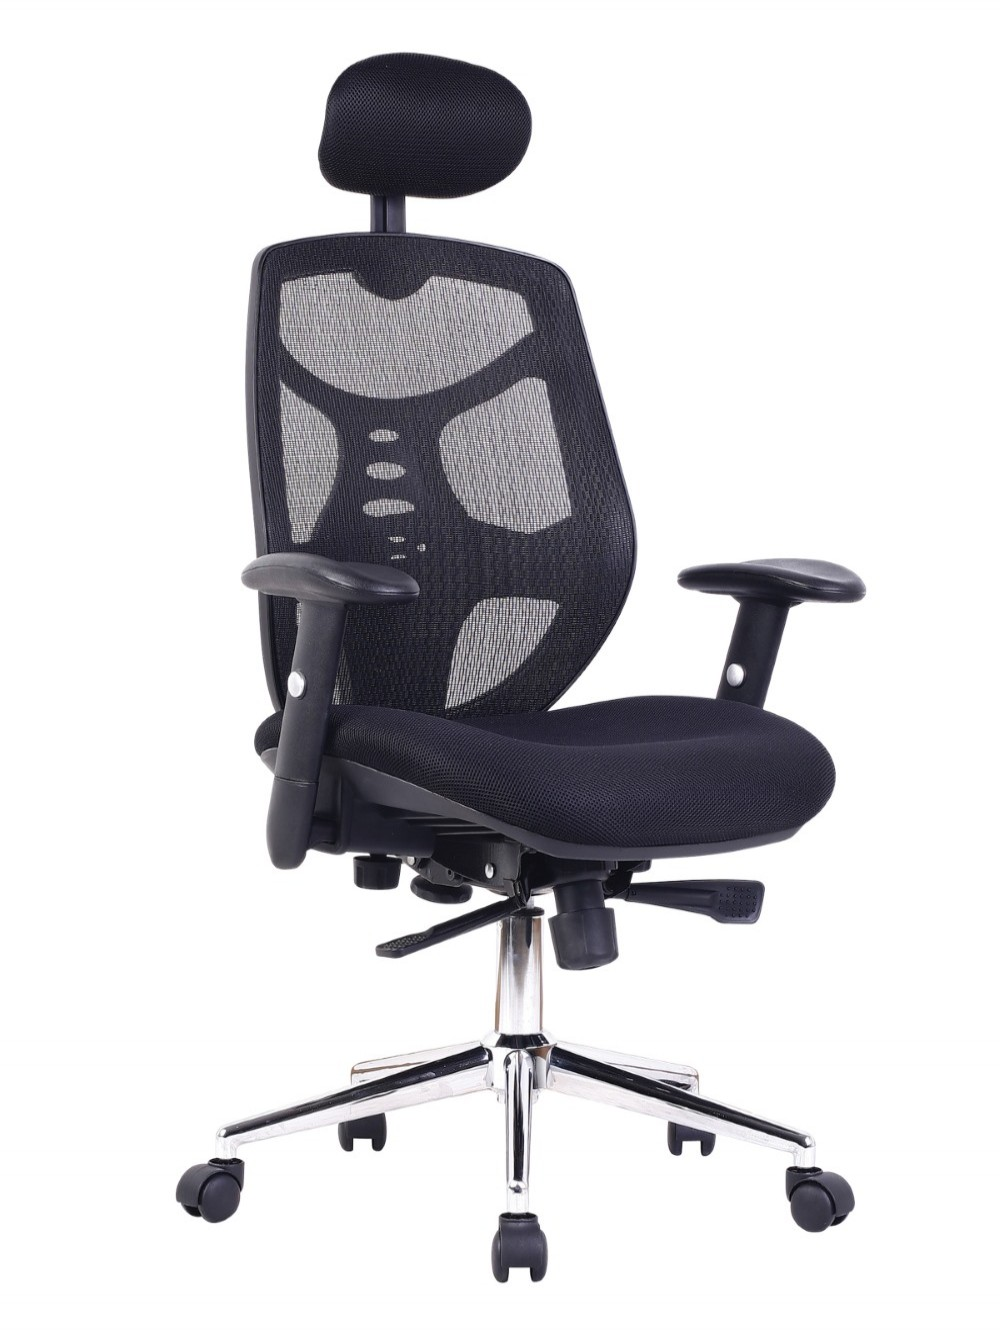 Mesh Office Chair with Headrest Polaris BCM/K113/BK by Eliza Tinsley